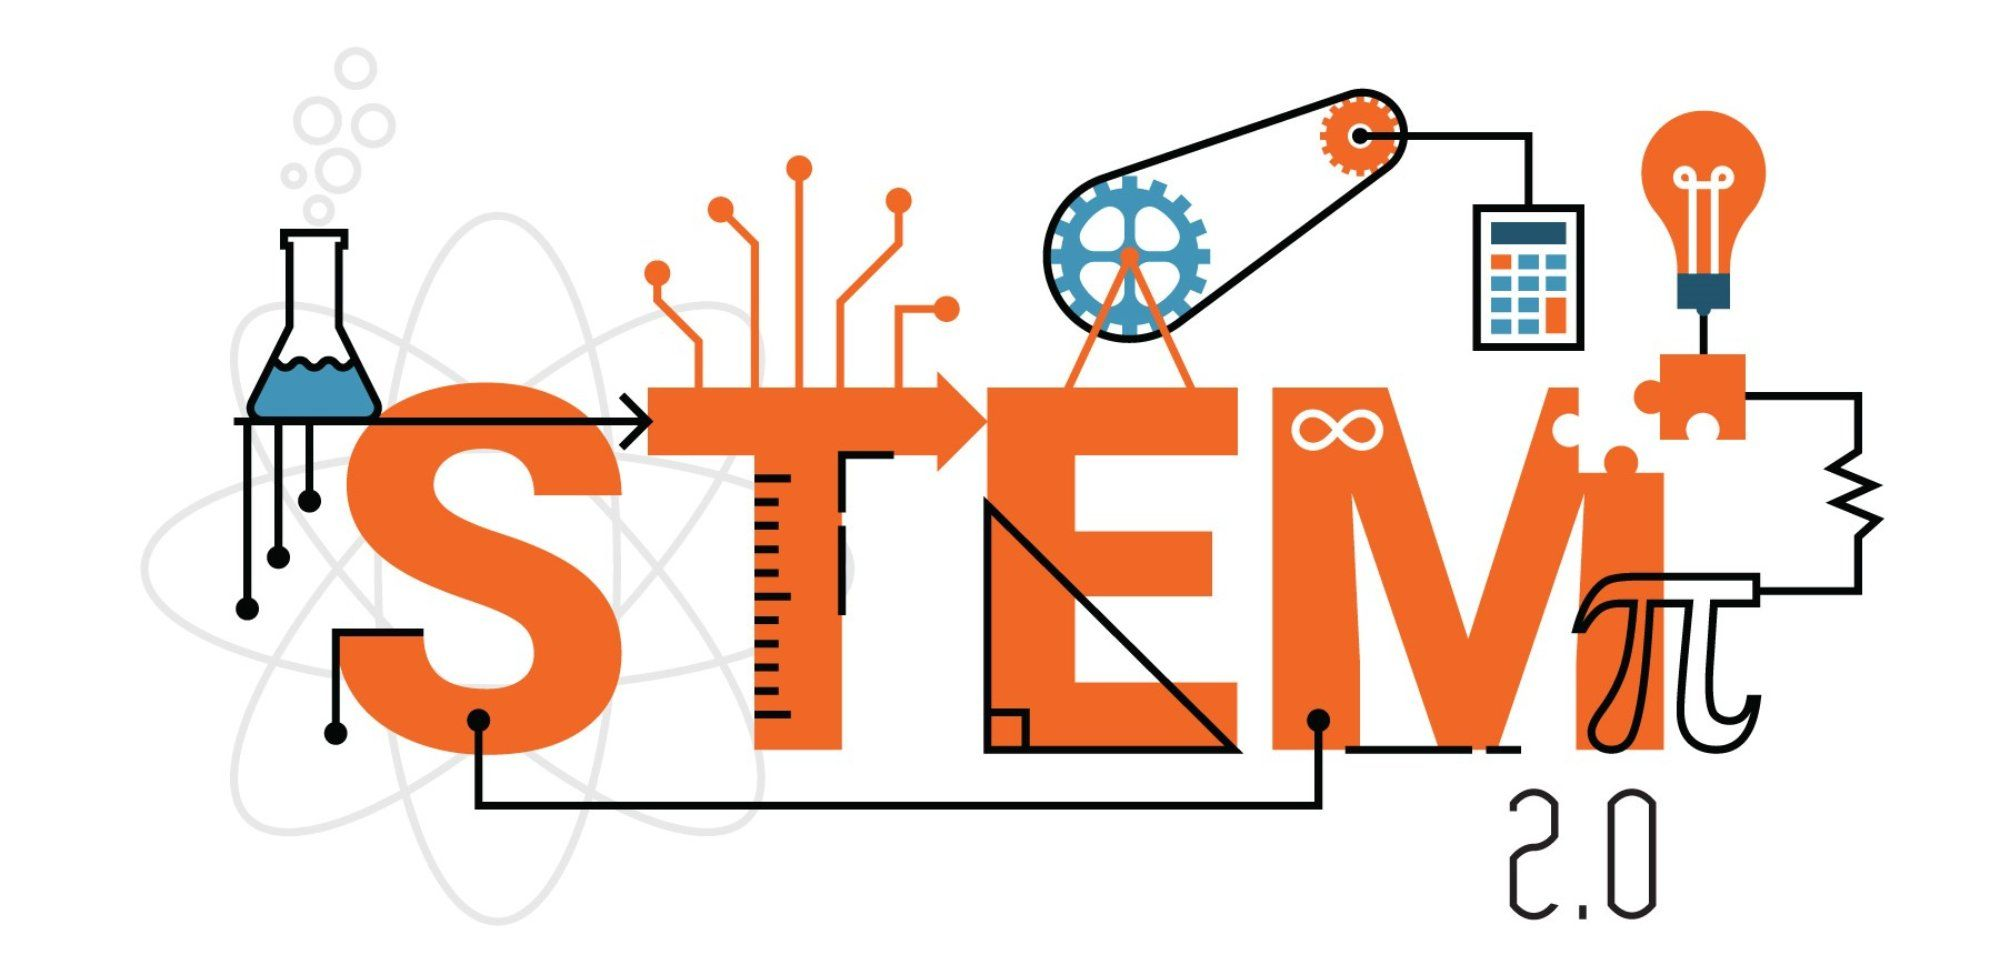 Kids Should Choose Science, Technology, Engineering and